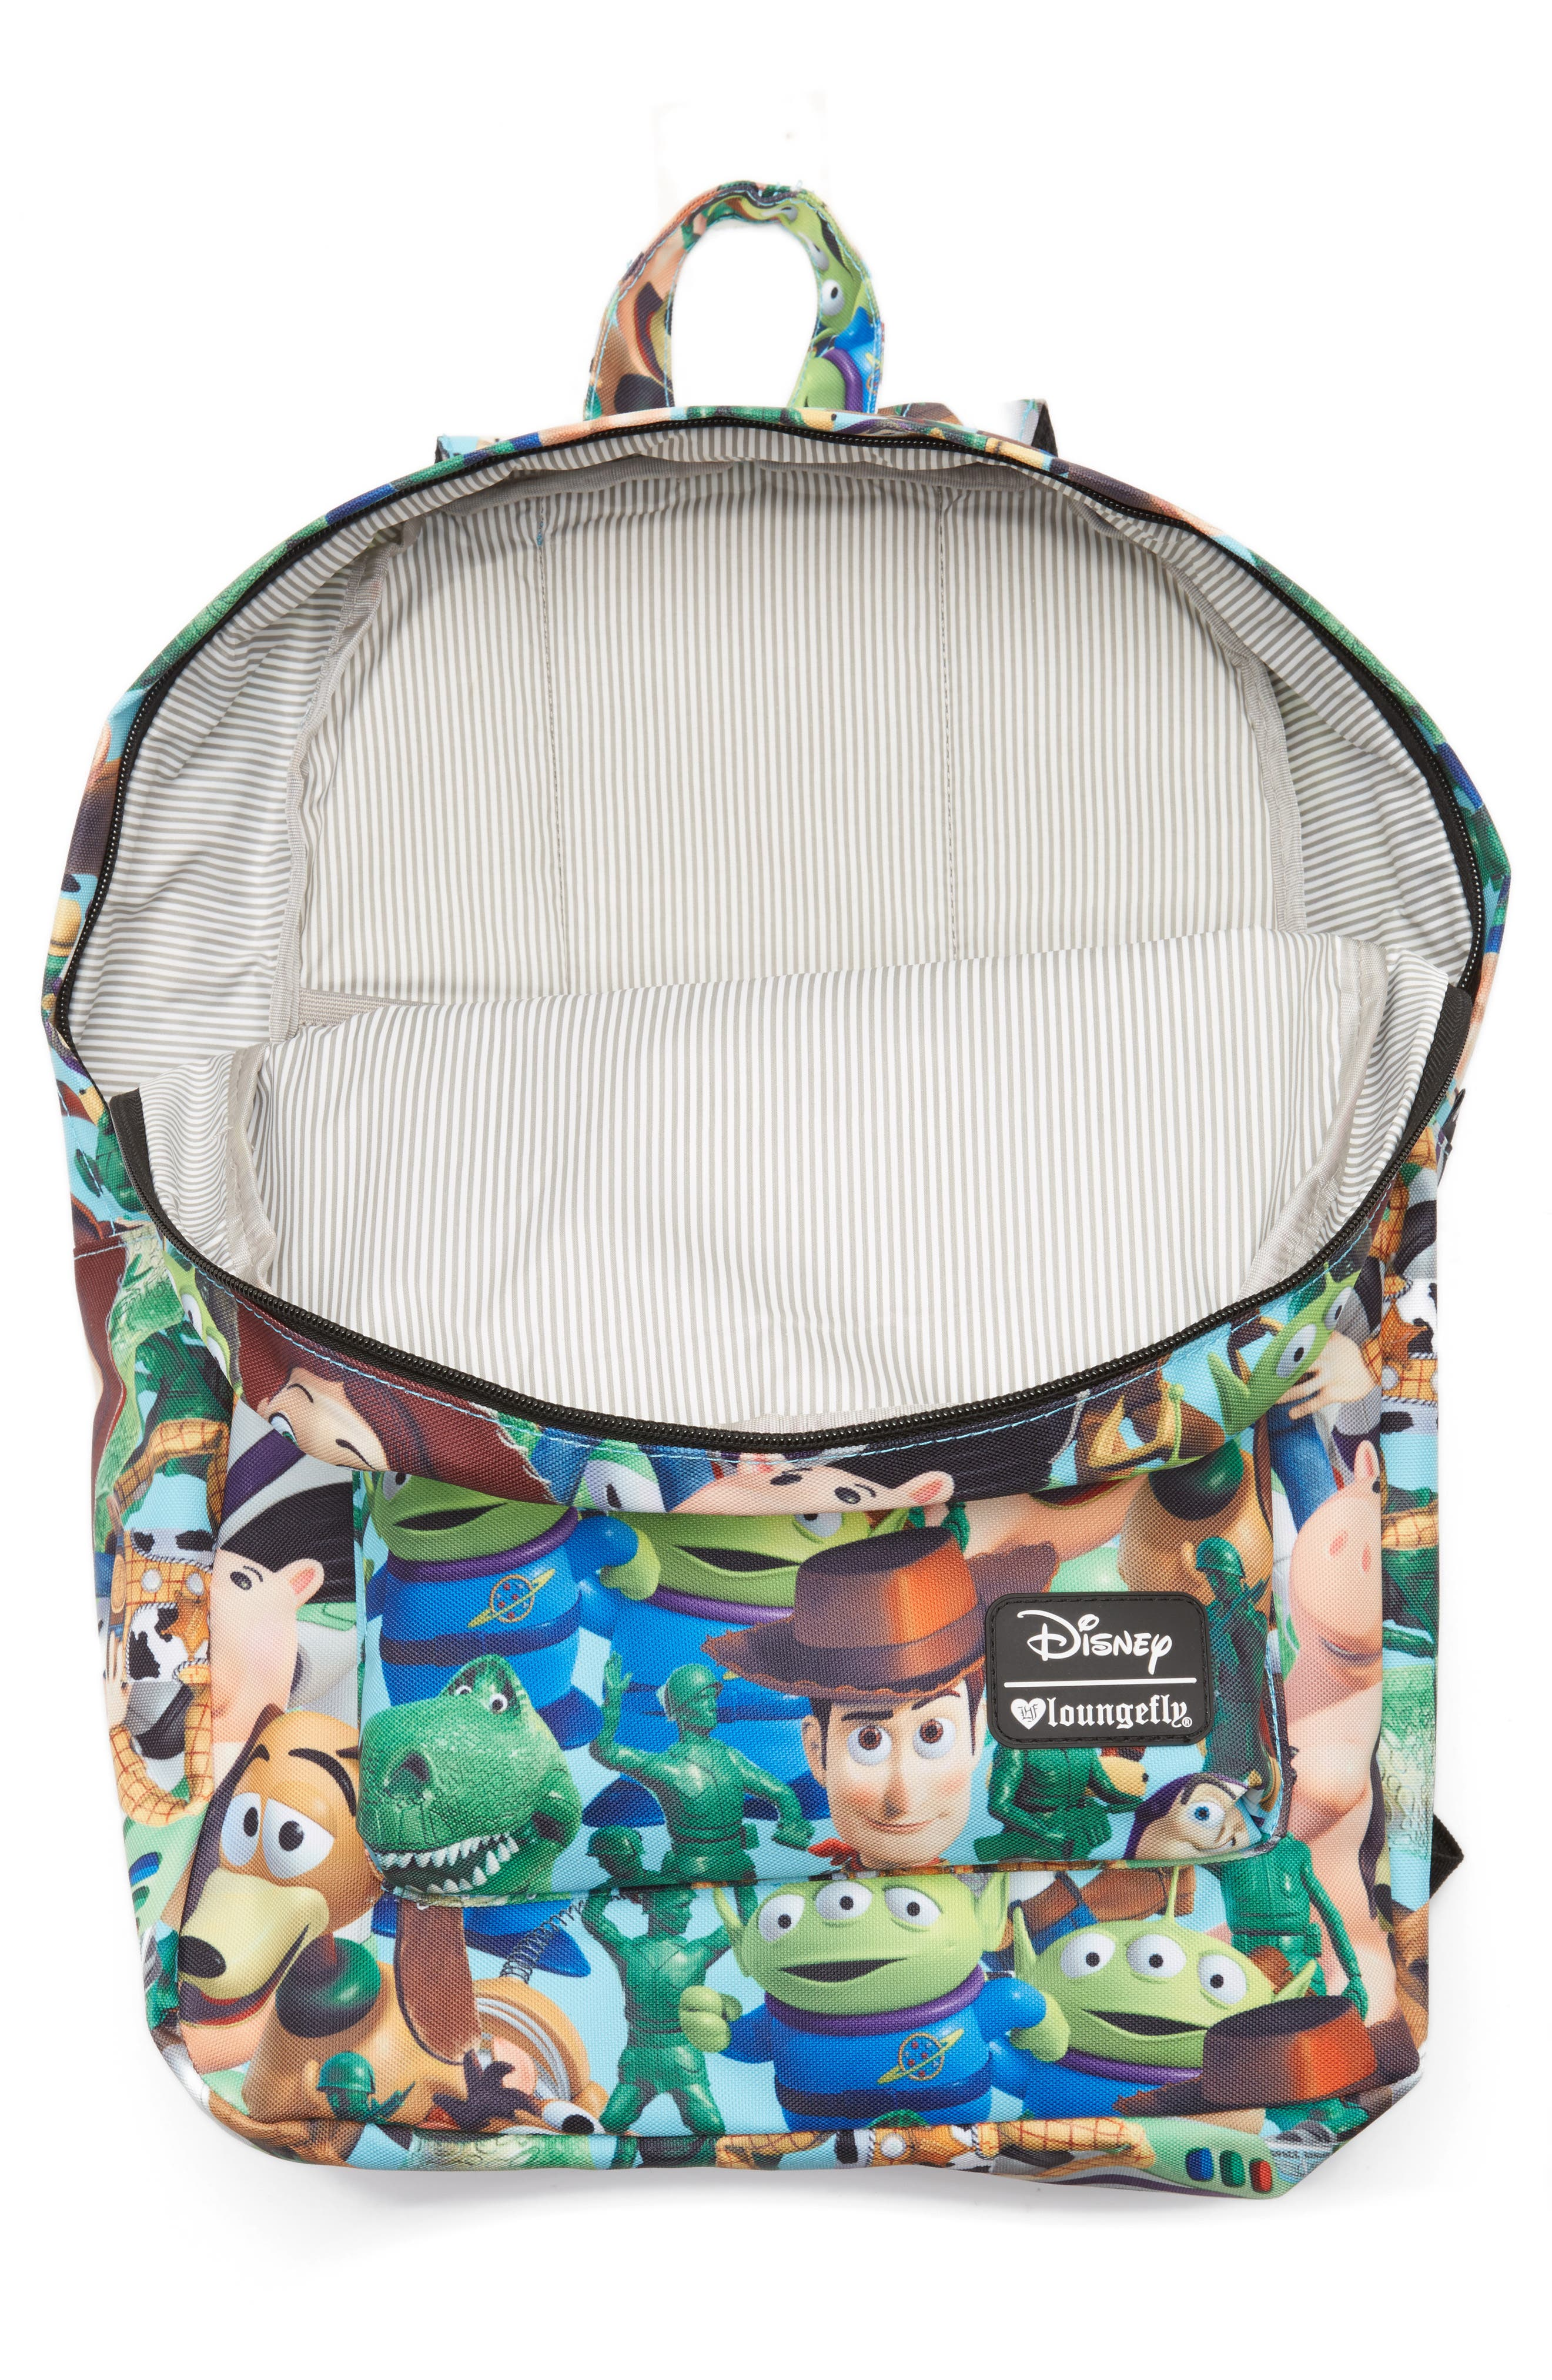 Disney<sup>®</sup> Toy Story Backpack,                             Alternate thumbnail 3, color,                             Blue Multi